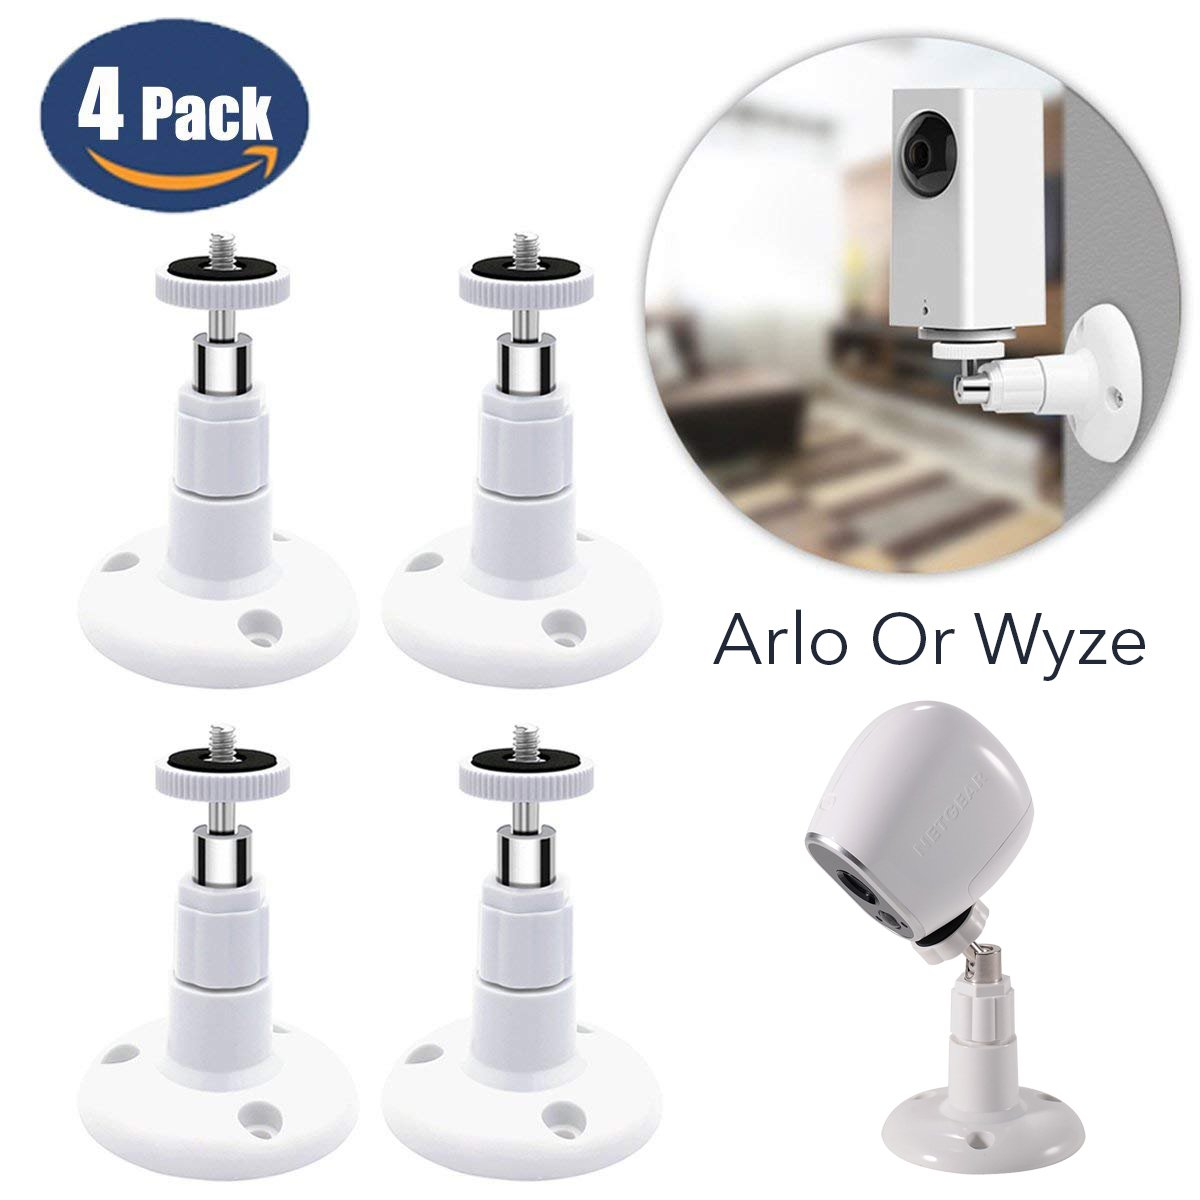 4 Pack Wyze, Arlo Camera Articulating Wall Mount Bracket, Adjustable Indoor 360 Degree Swivel Ceiling Mount Braket for Wyze Cam, Arlo Cam Pan Camera (White) by Fstop Labs